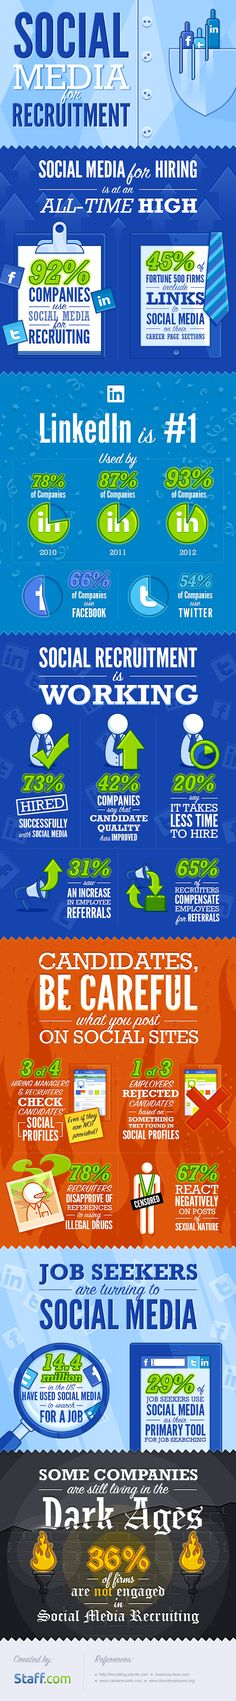 Companies are turning to social media for recruitment. Are you on top of the latest tools for your job search?